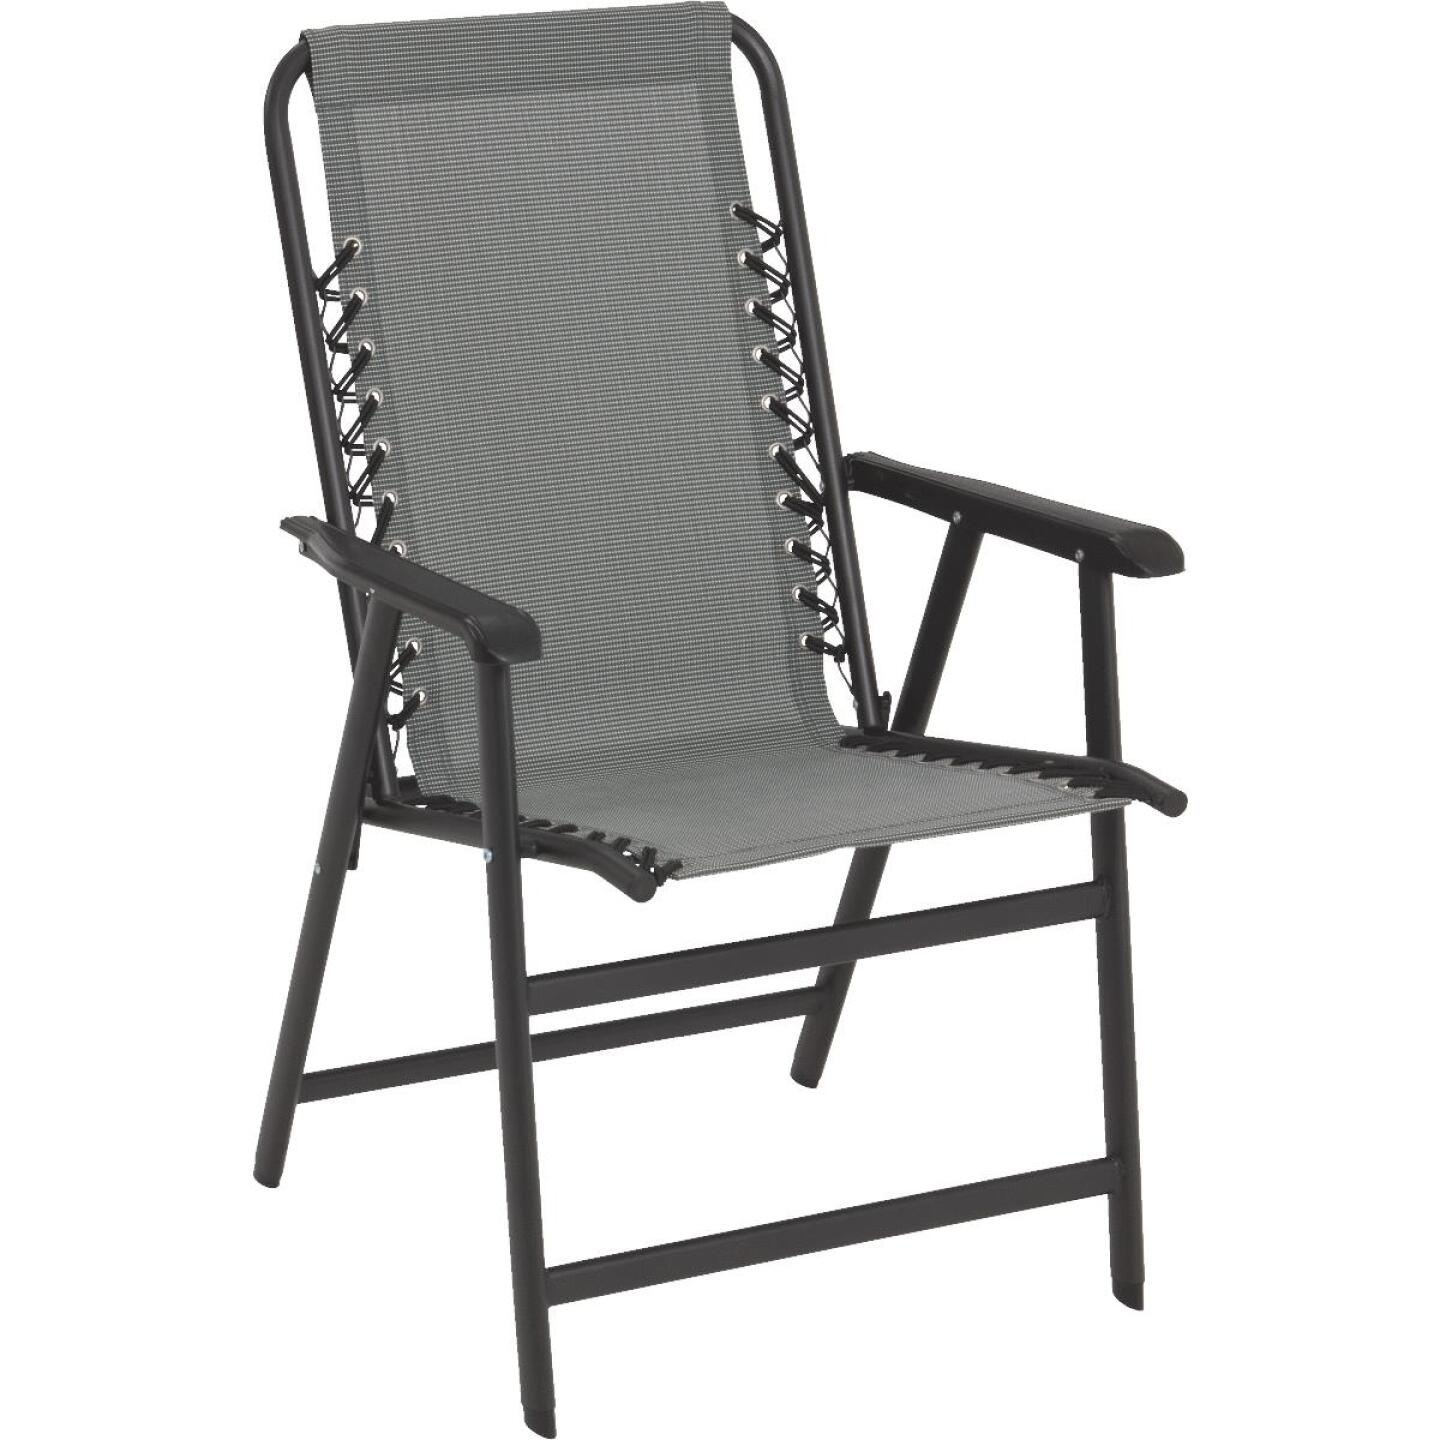 Outdoor Expressions Seville Gray Sling Folding Chair Image 1